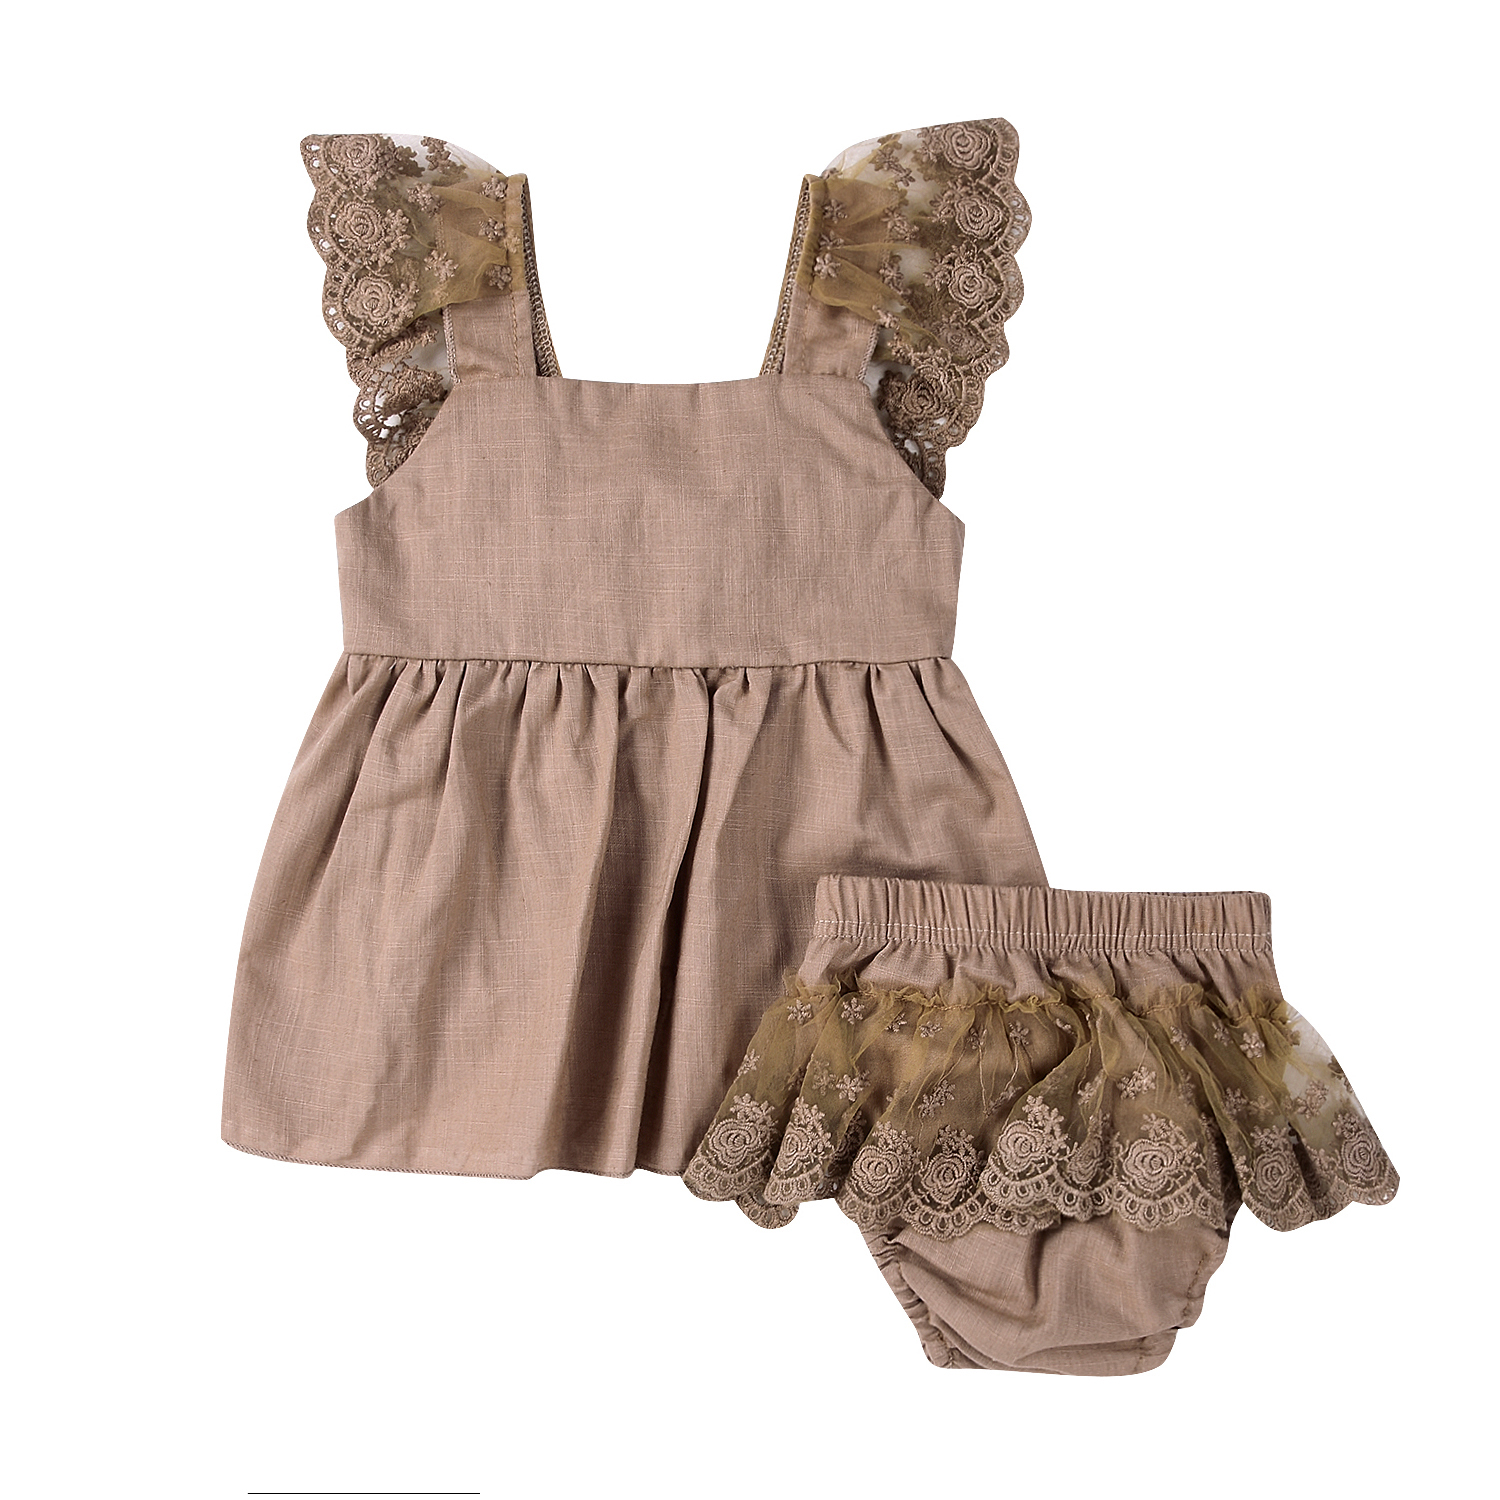 2Pcs Baby Clothing Newborn Baby Girl Lace Tops Bowknot Dress Pants Bottoms Cute Baby Outfits Clothes Set 0-2T